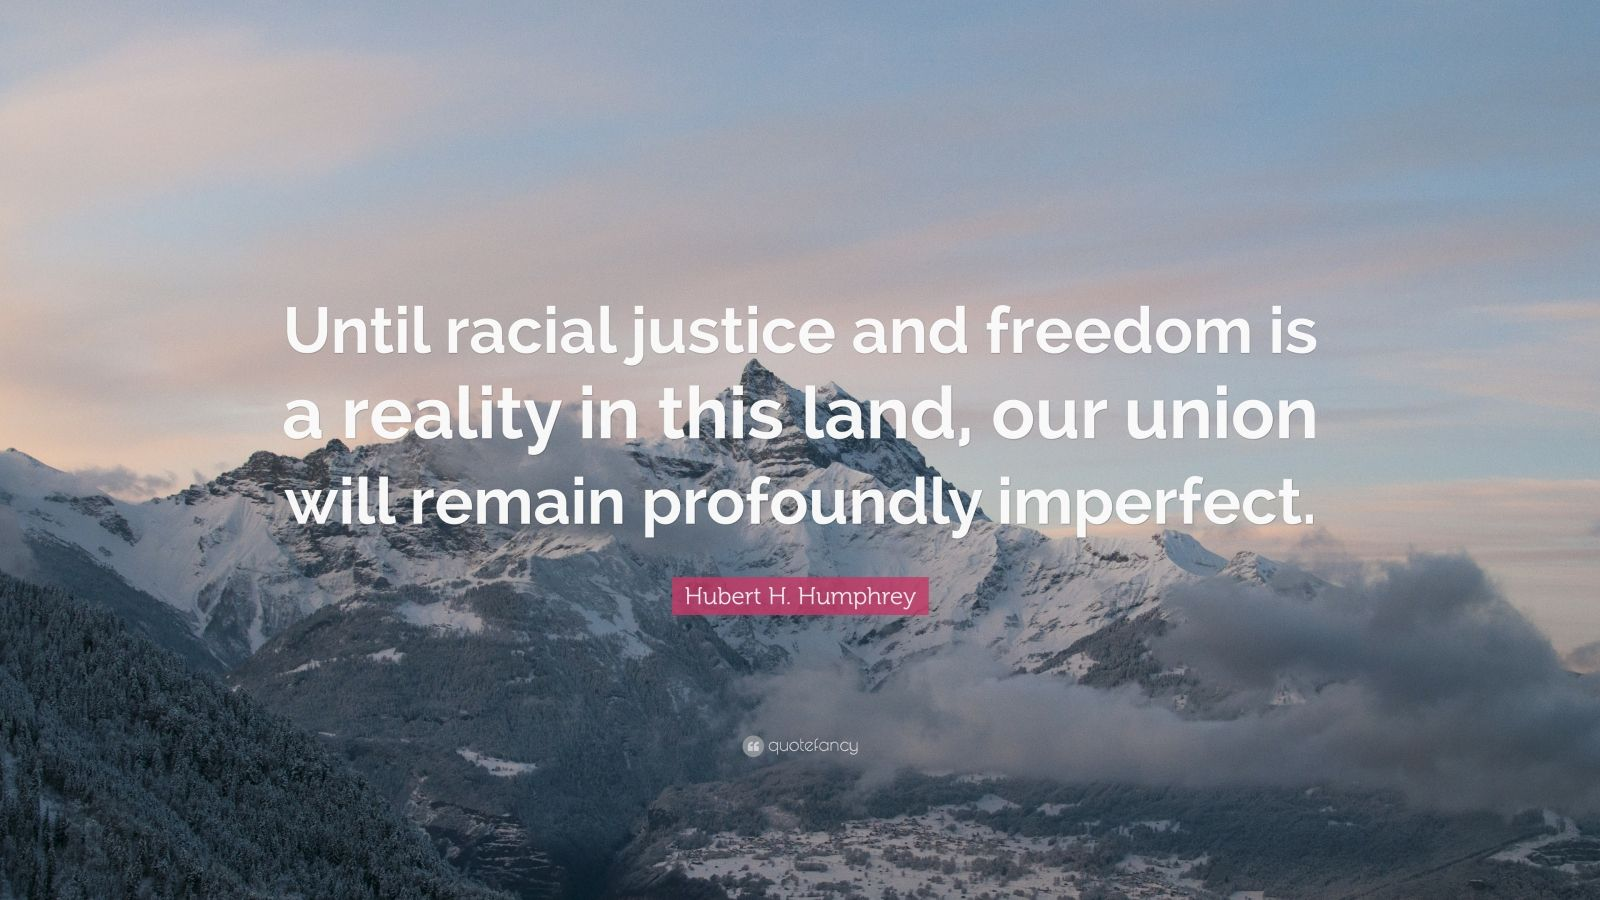 """Hubert H. Humphrey Quote: """"Until racial justice and freedom is a reality in this land, our union will remain profoundly imperfect."""""""